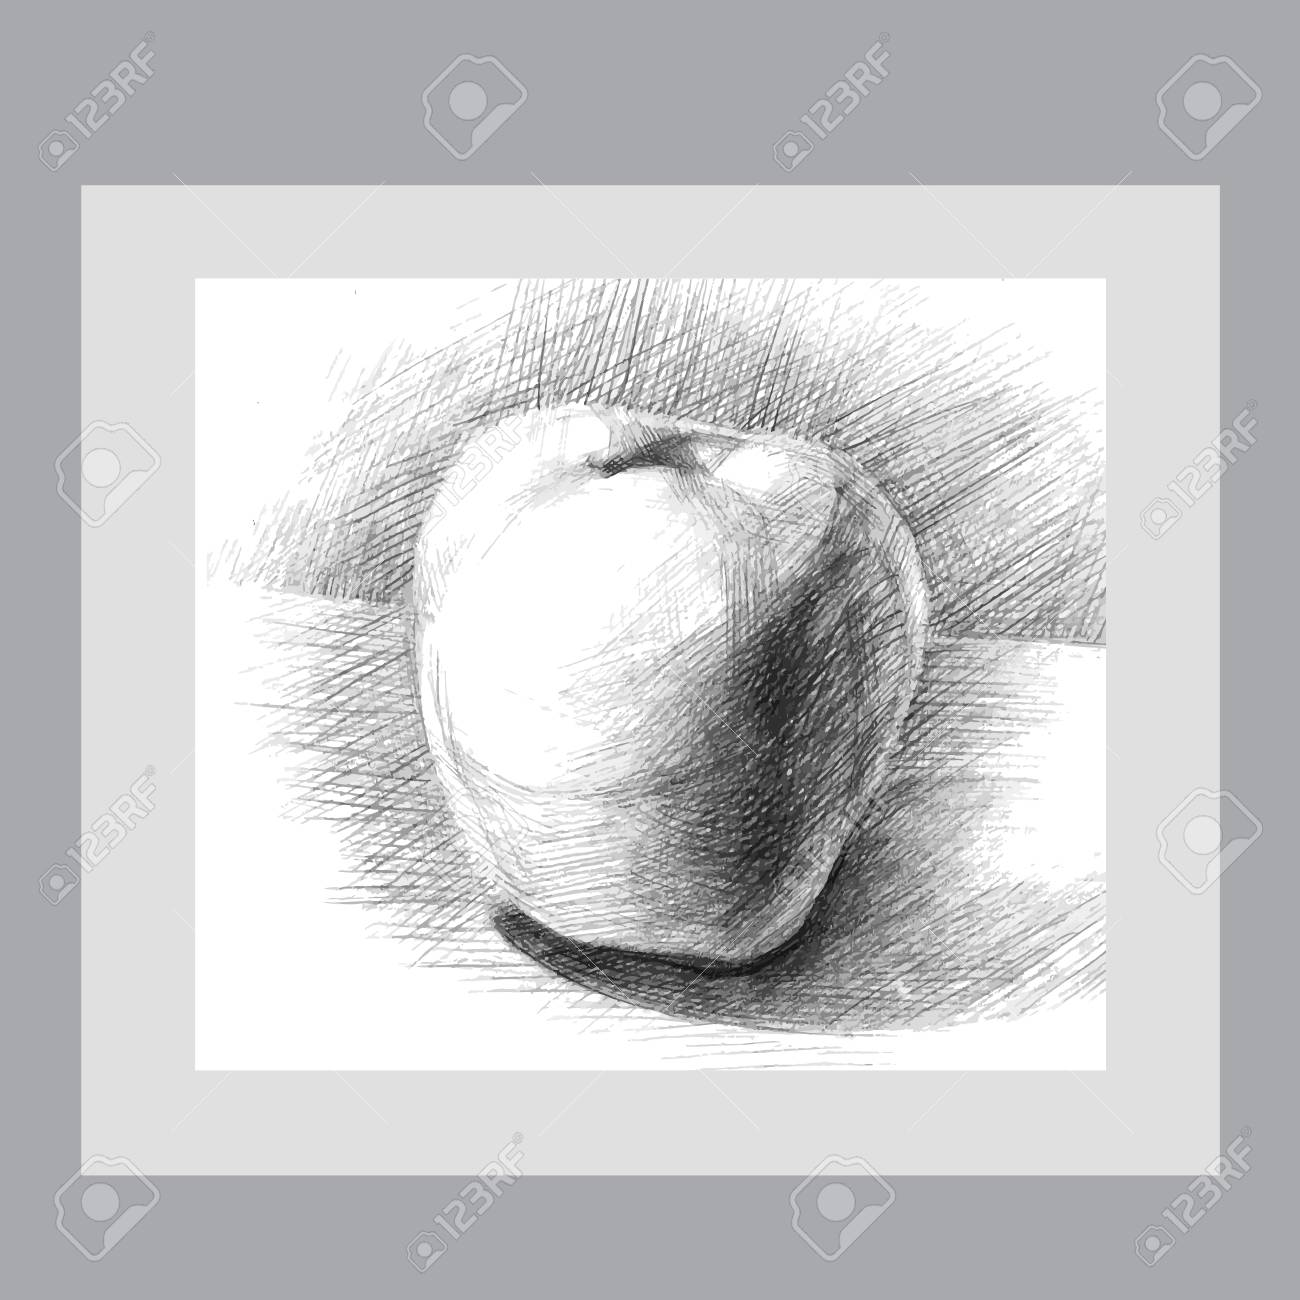 Illustration with a pencil sketch apple for your creativity